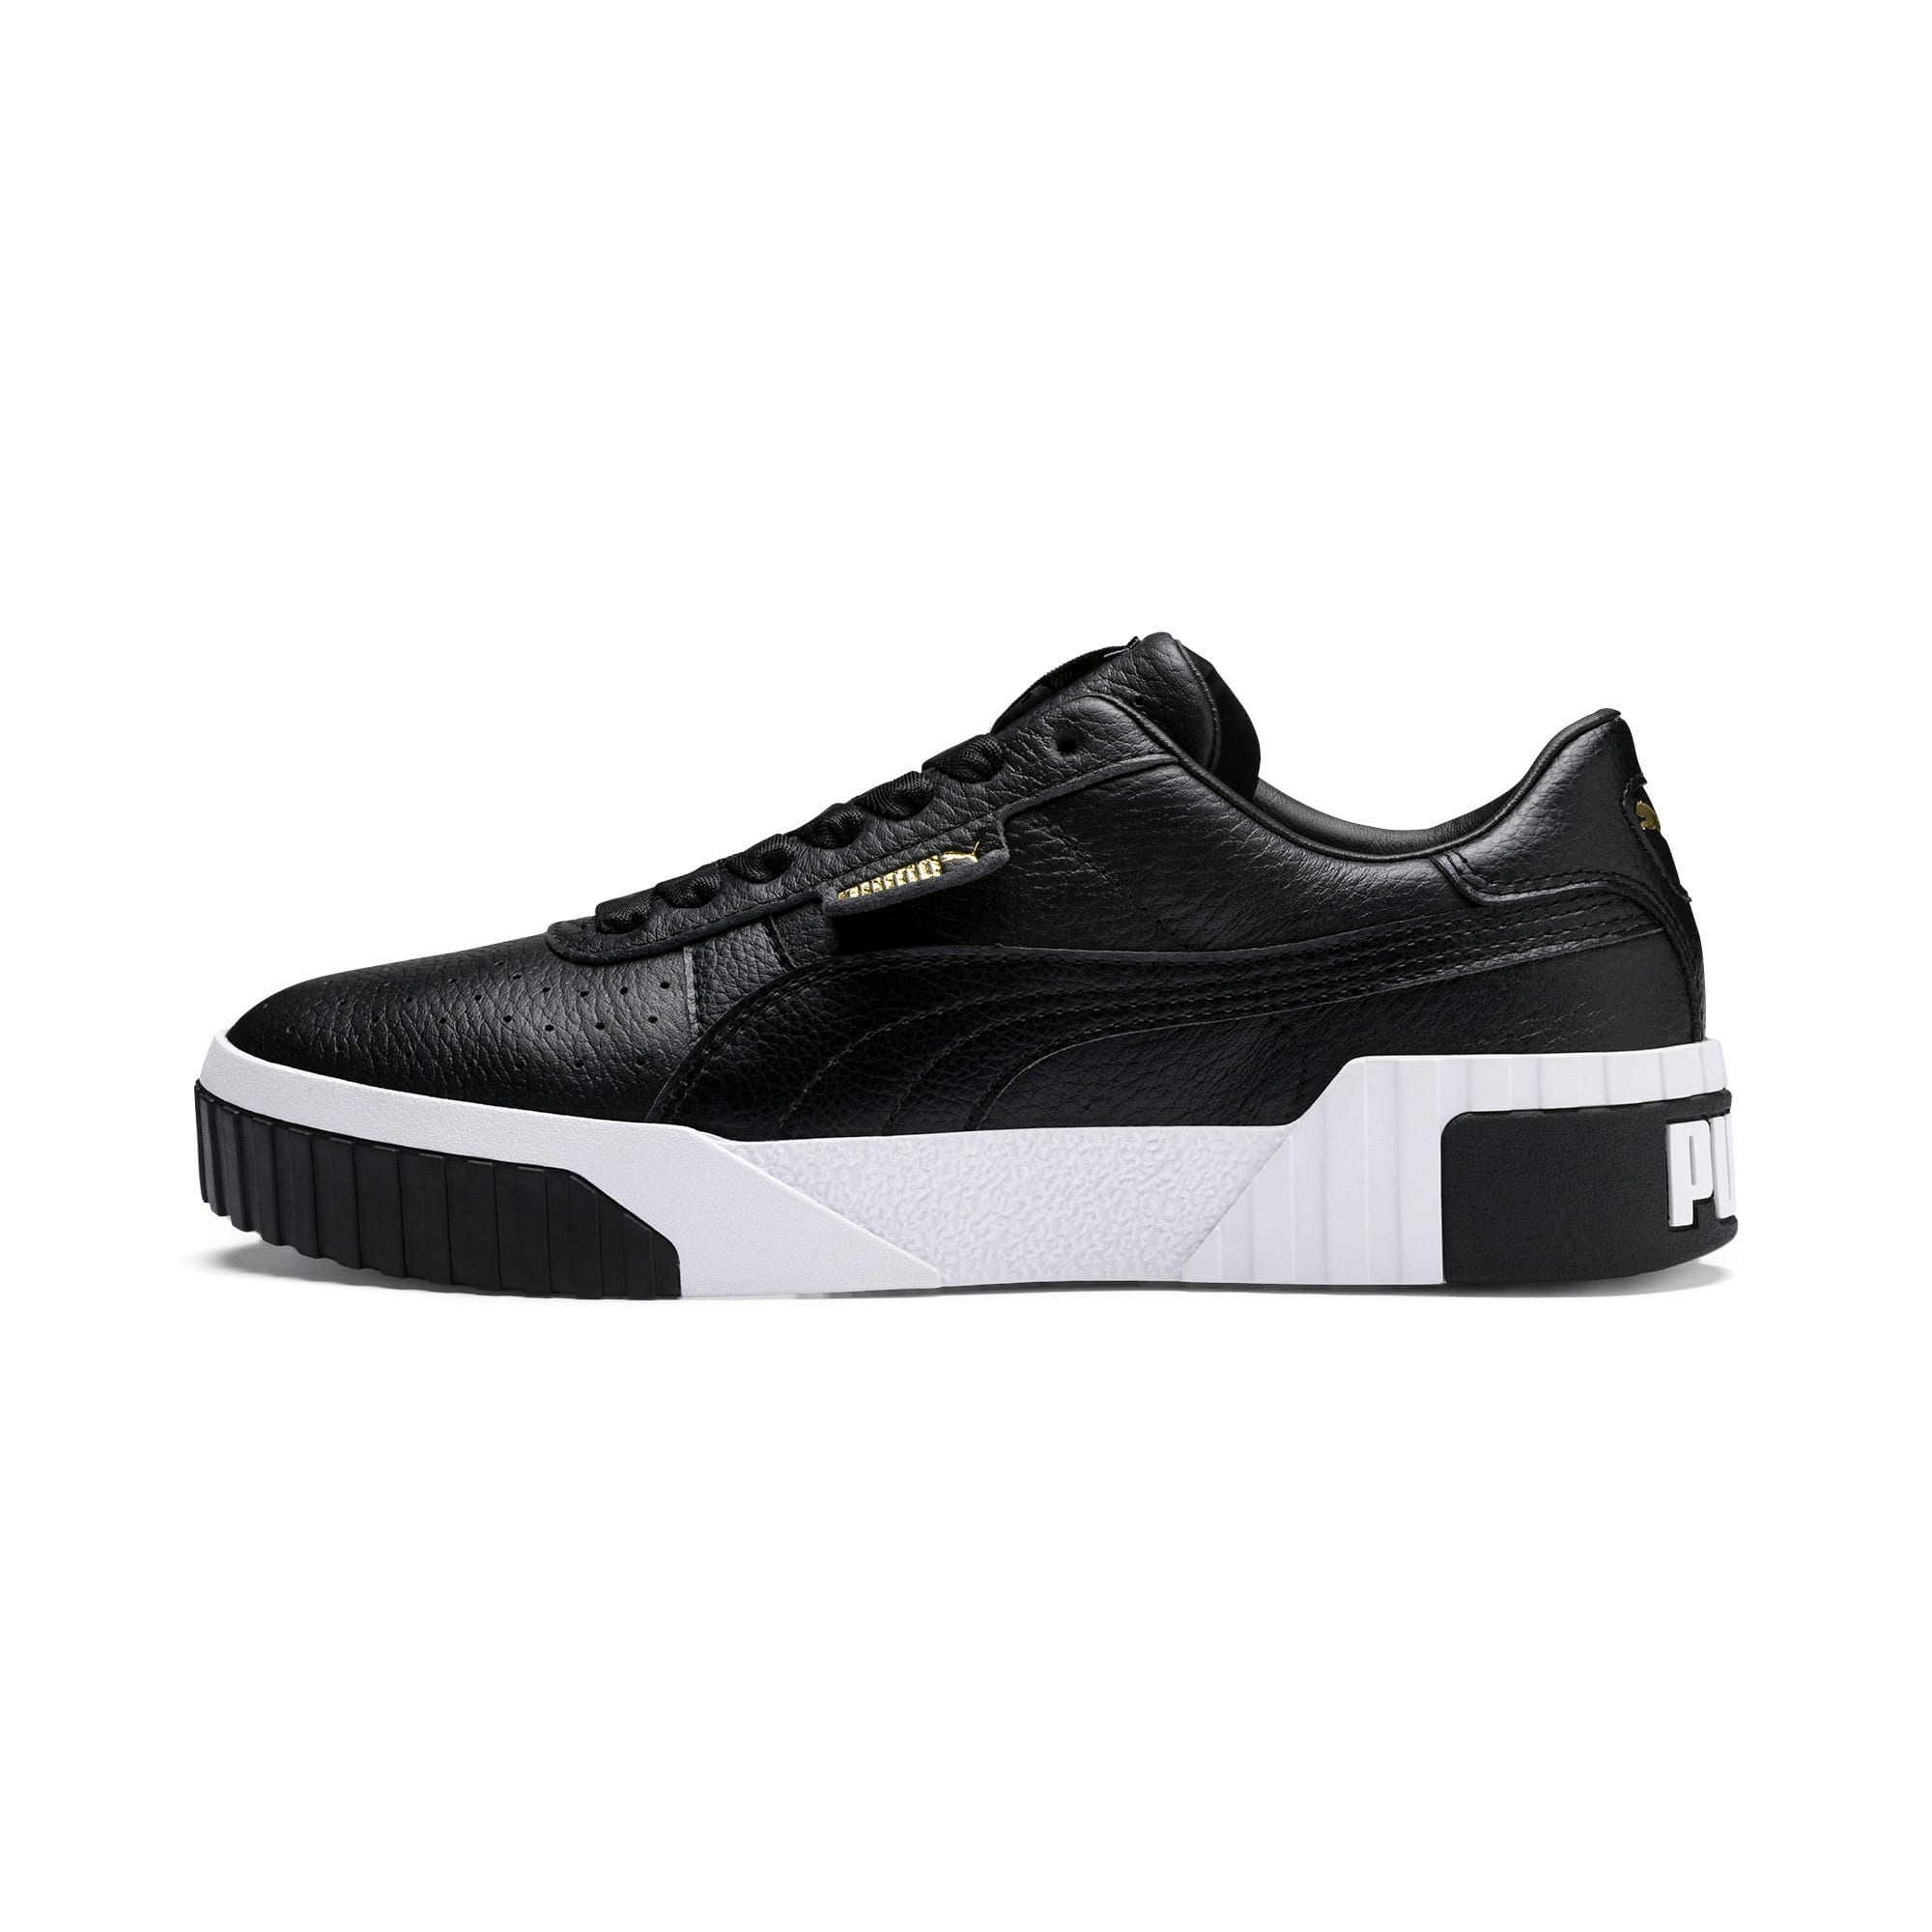 Thumbnail 1 of Cali Women's Trainers, Puma Black-Puma White, medium